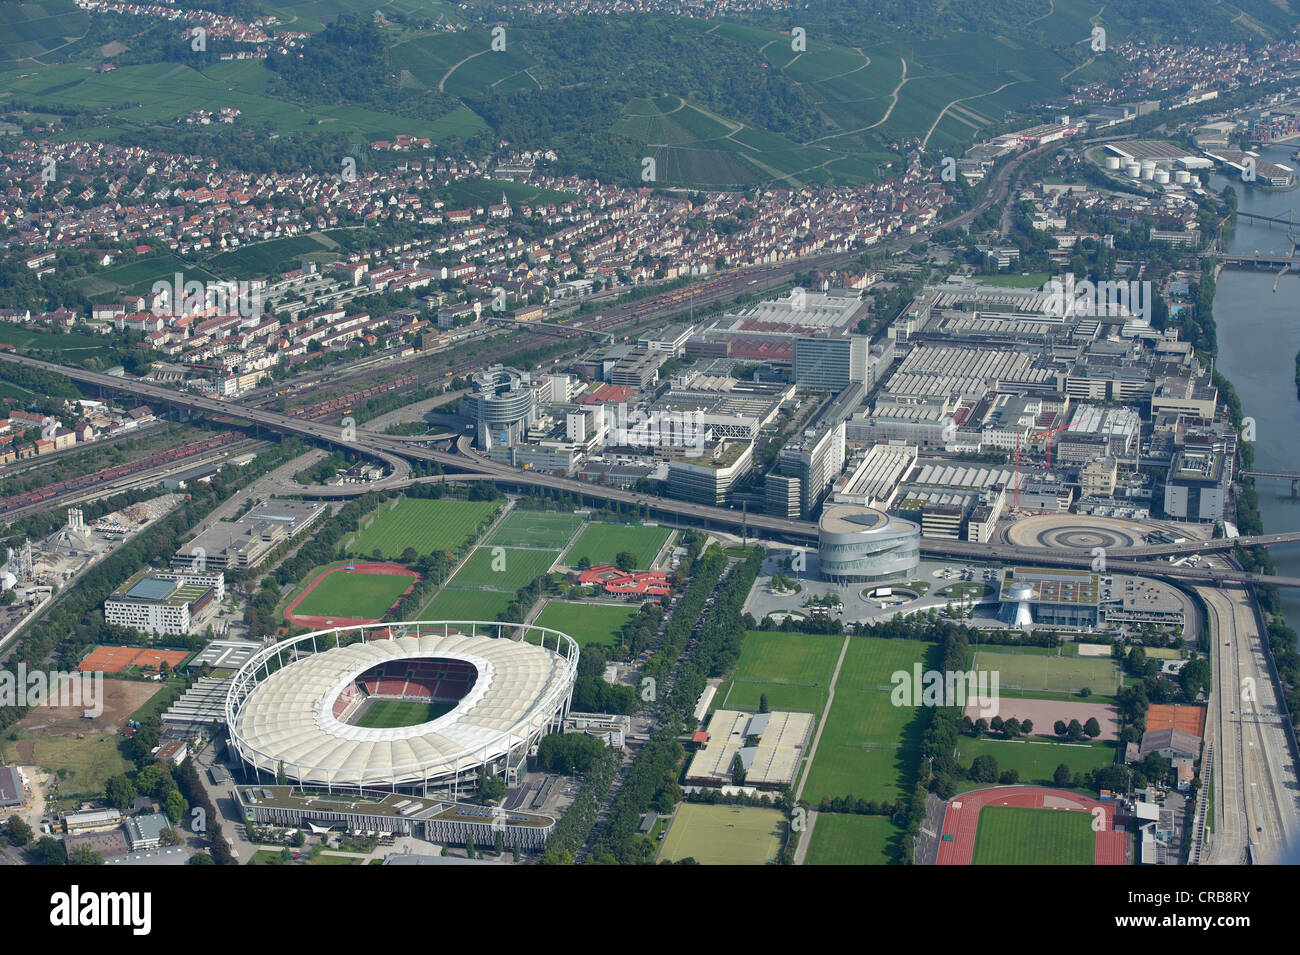 aerial view neckarpark vfb stuttgart football stadium stock photo royalty free image. Black Bedroom Furniture Sets. Home Design Ideas